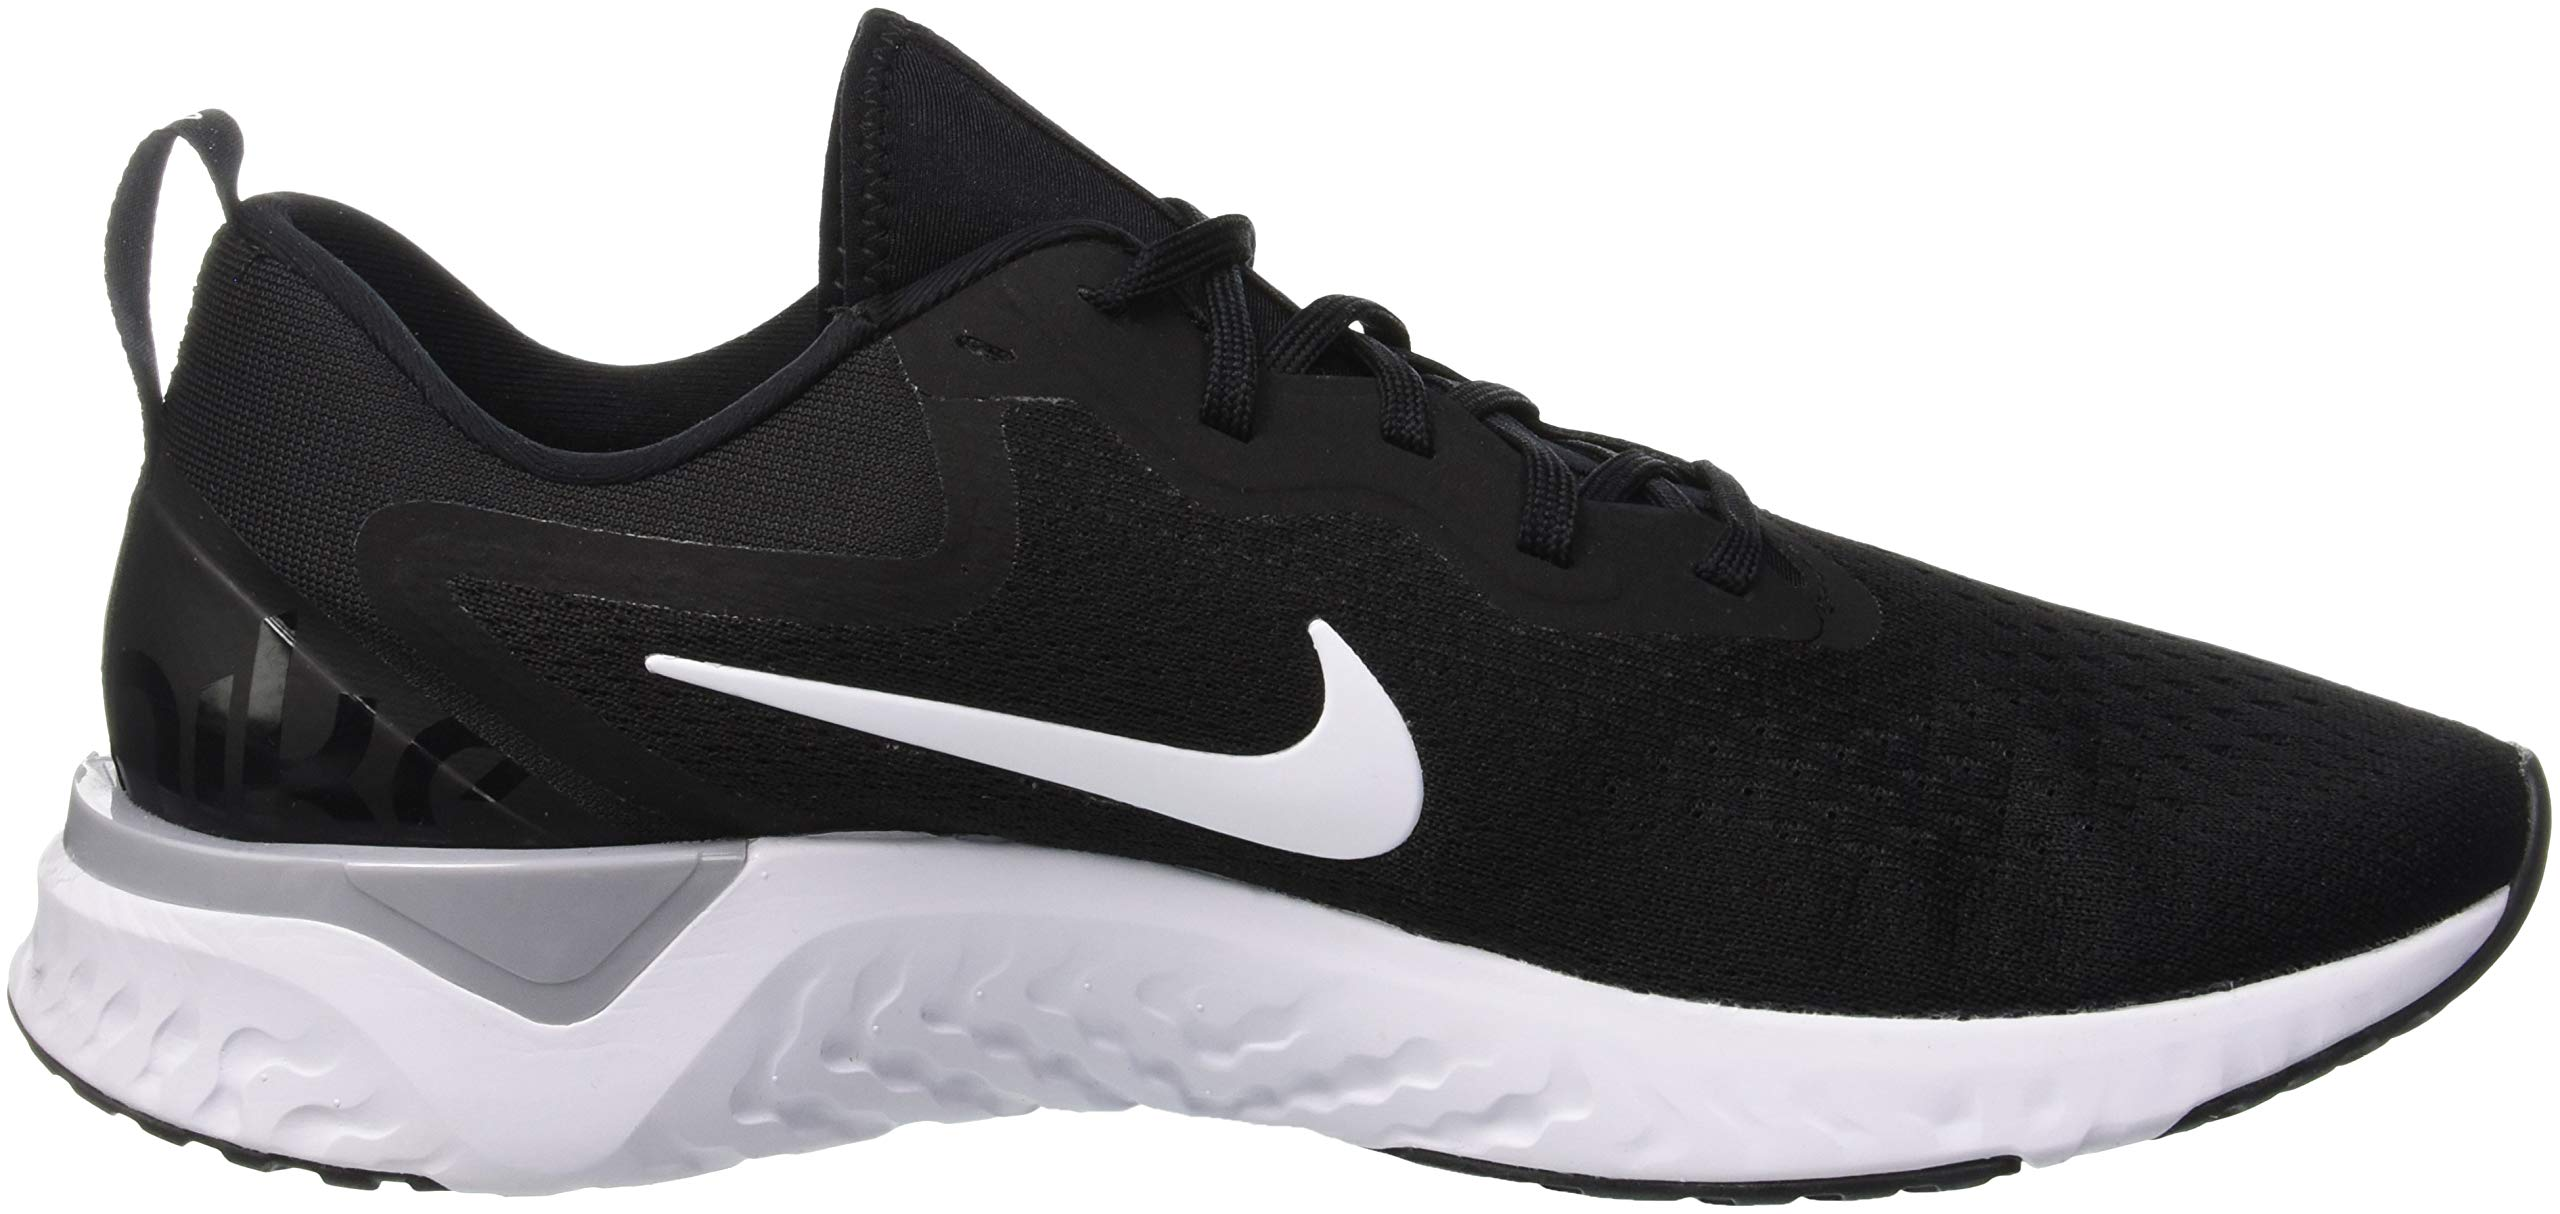 Nike Odyssey React Mens Running Trainers AO9819 Sneakers Shoes (UK 6 US 7 EU 40, Black White Wolf Grey 001) by Nike (Image #6)